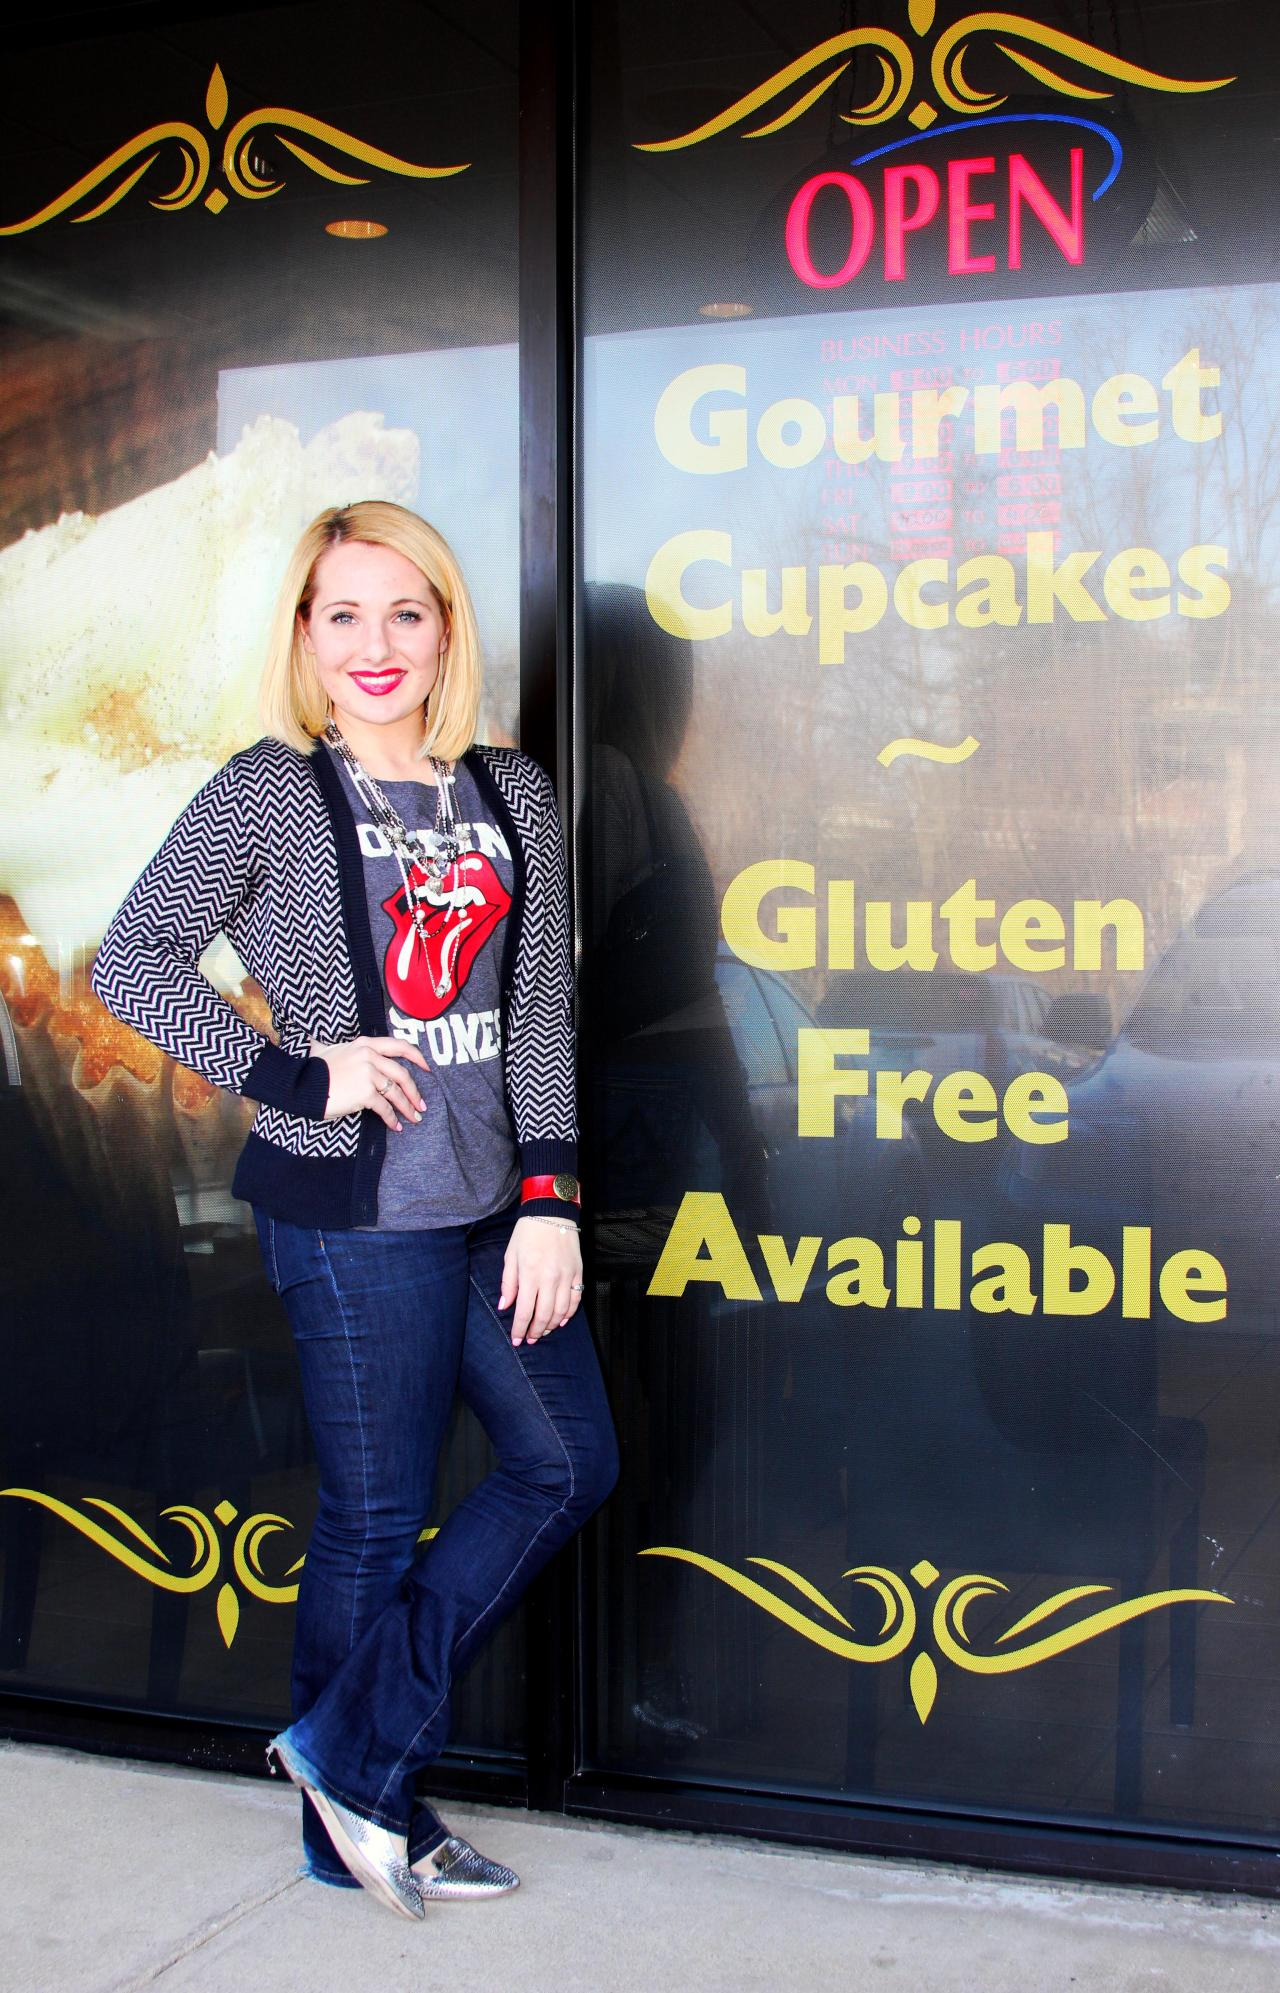 GLUTEN FREE CUPCAKES LOCALLY?! Yes--please! Tammy is always developing new and delicious gluten-free recipes :)